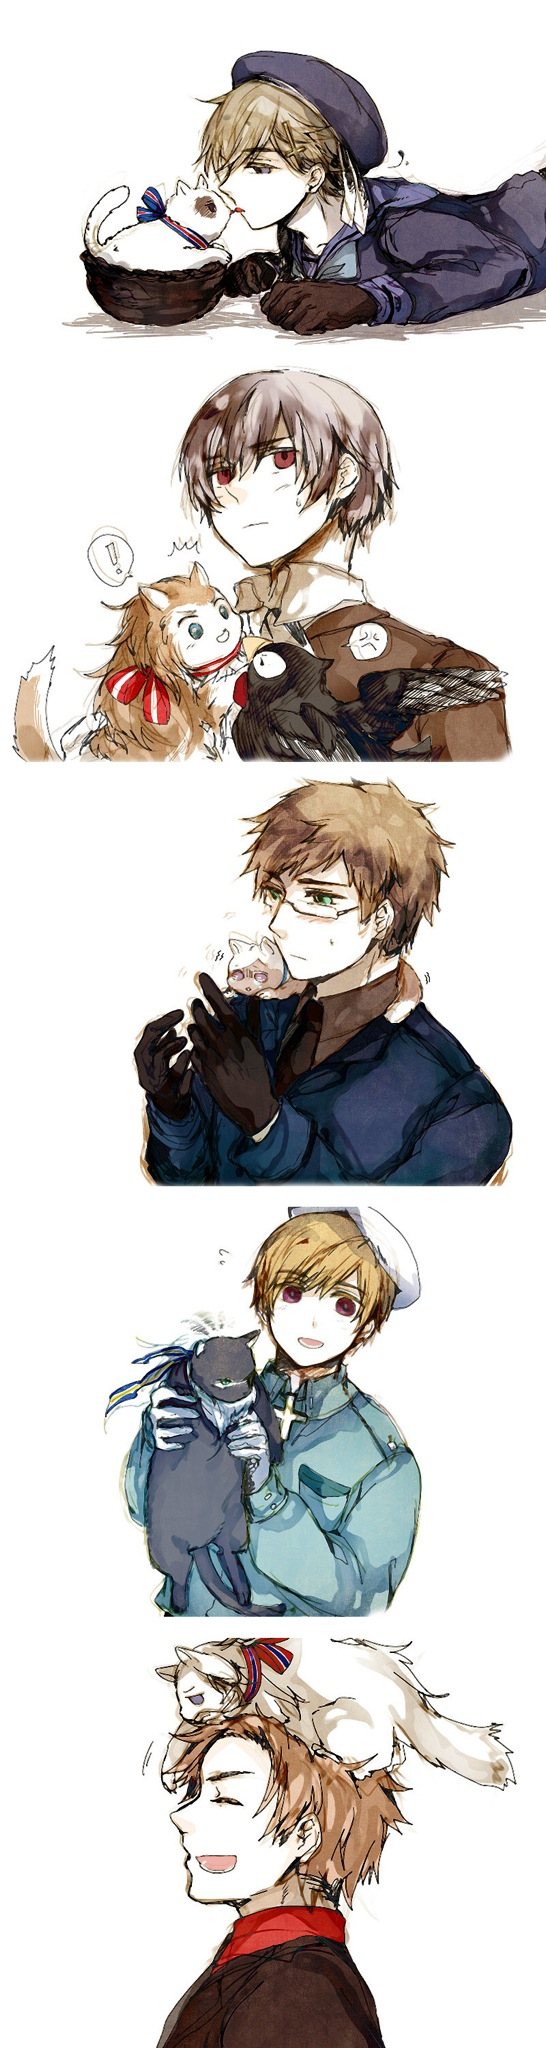 Hetalia Nordics. I love this picture almost as much as the majestical lily flower